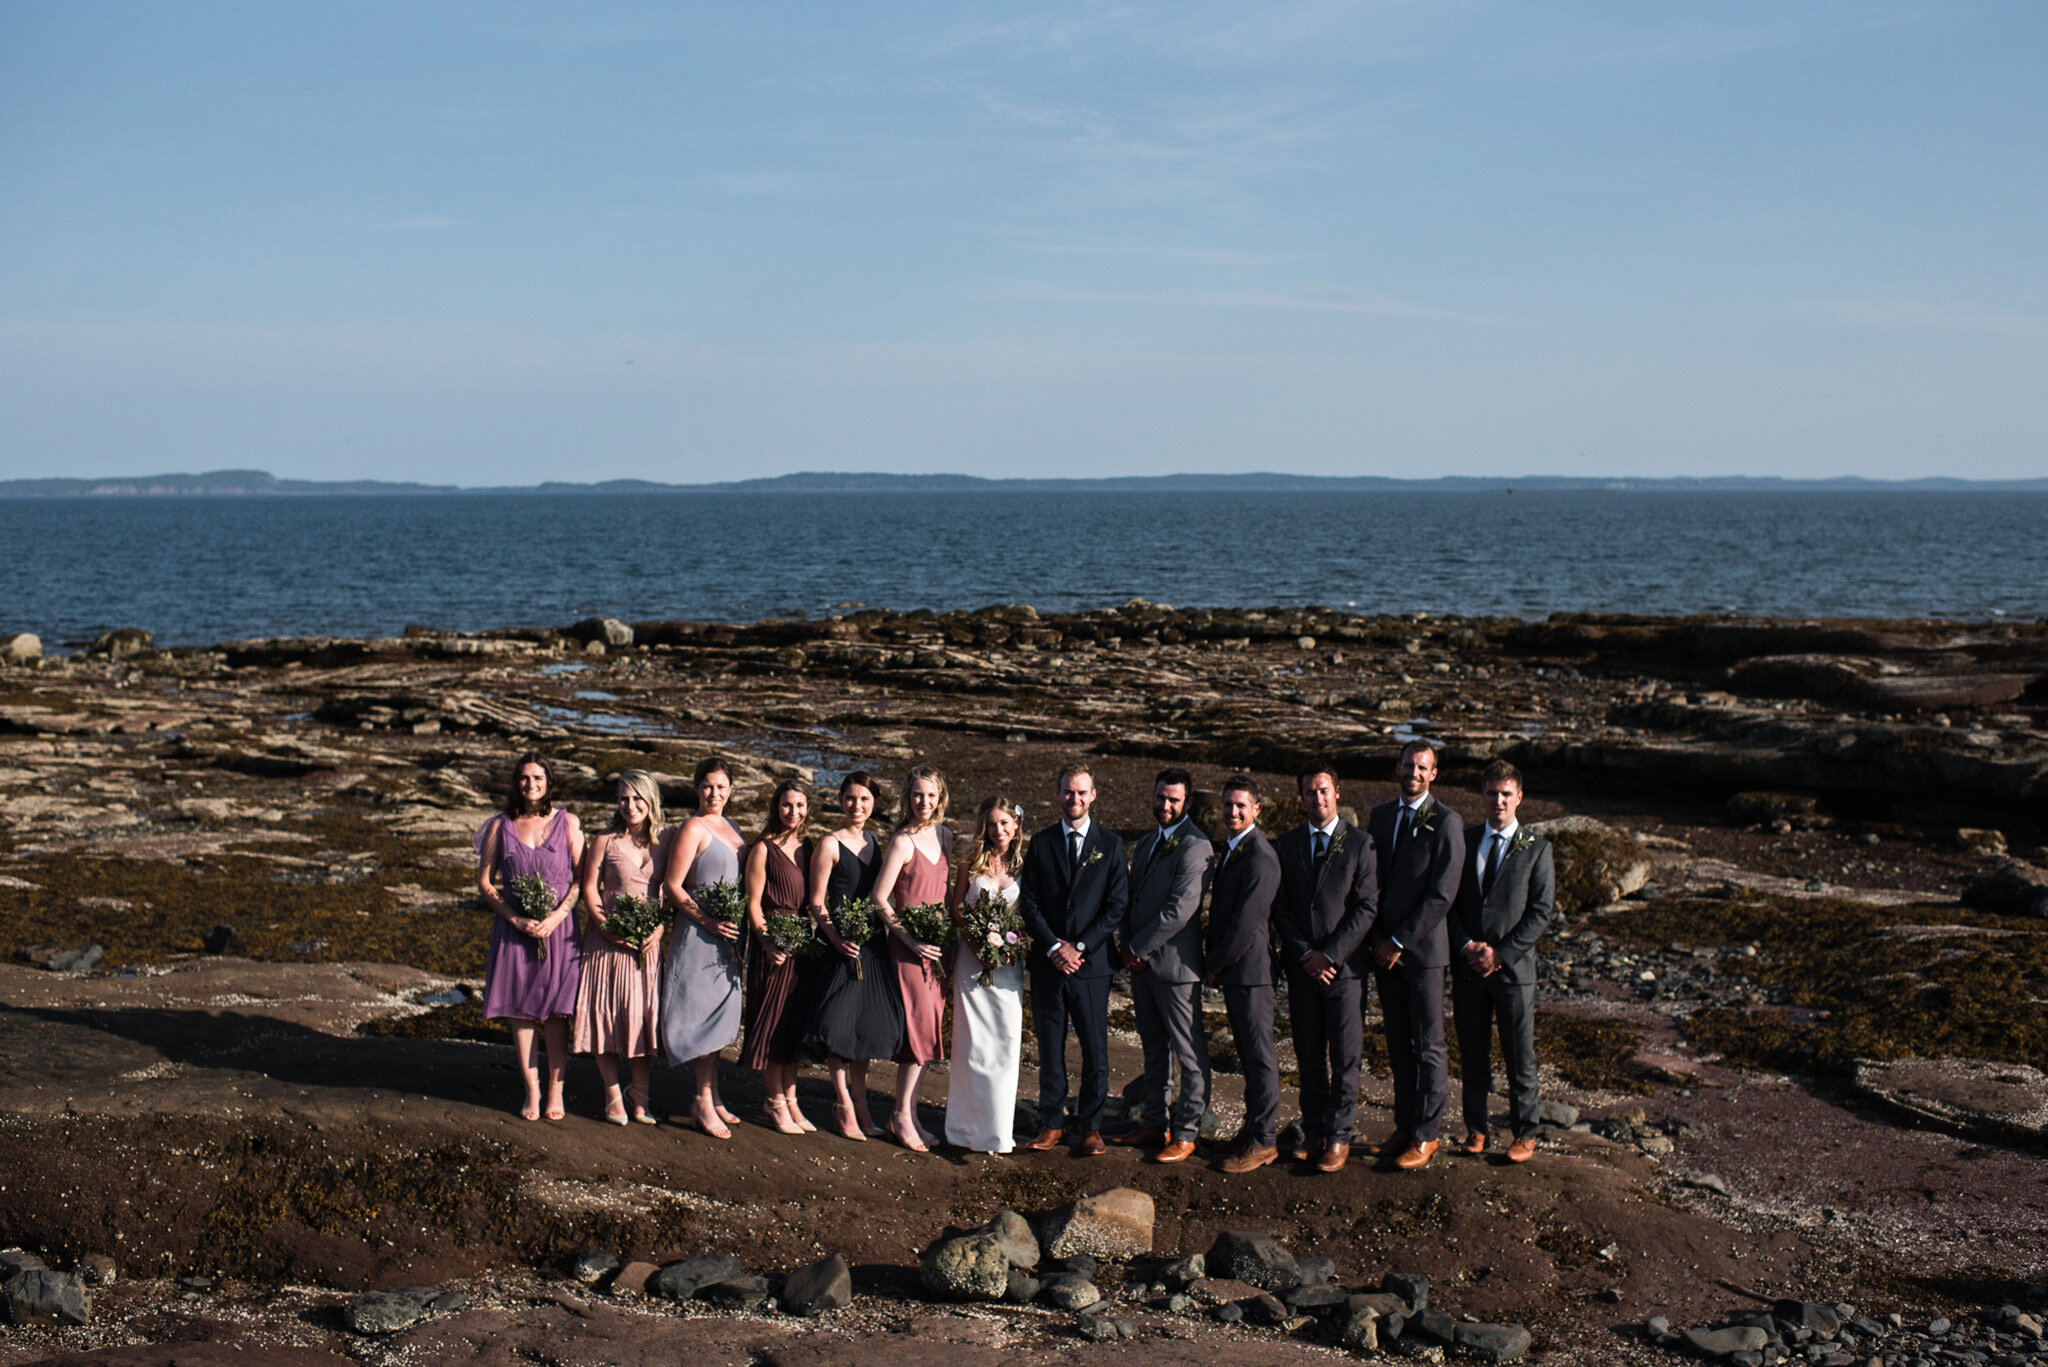 183-mix-match-wedding-party-by-the-ocean-destination-wedding-st--andrews-by-the-sea-photos.jpg